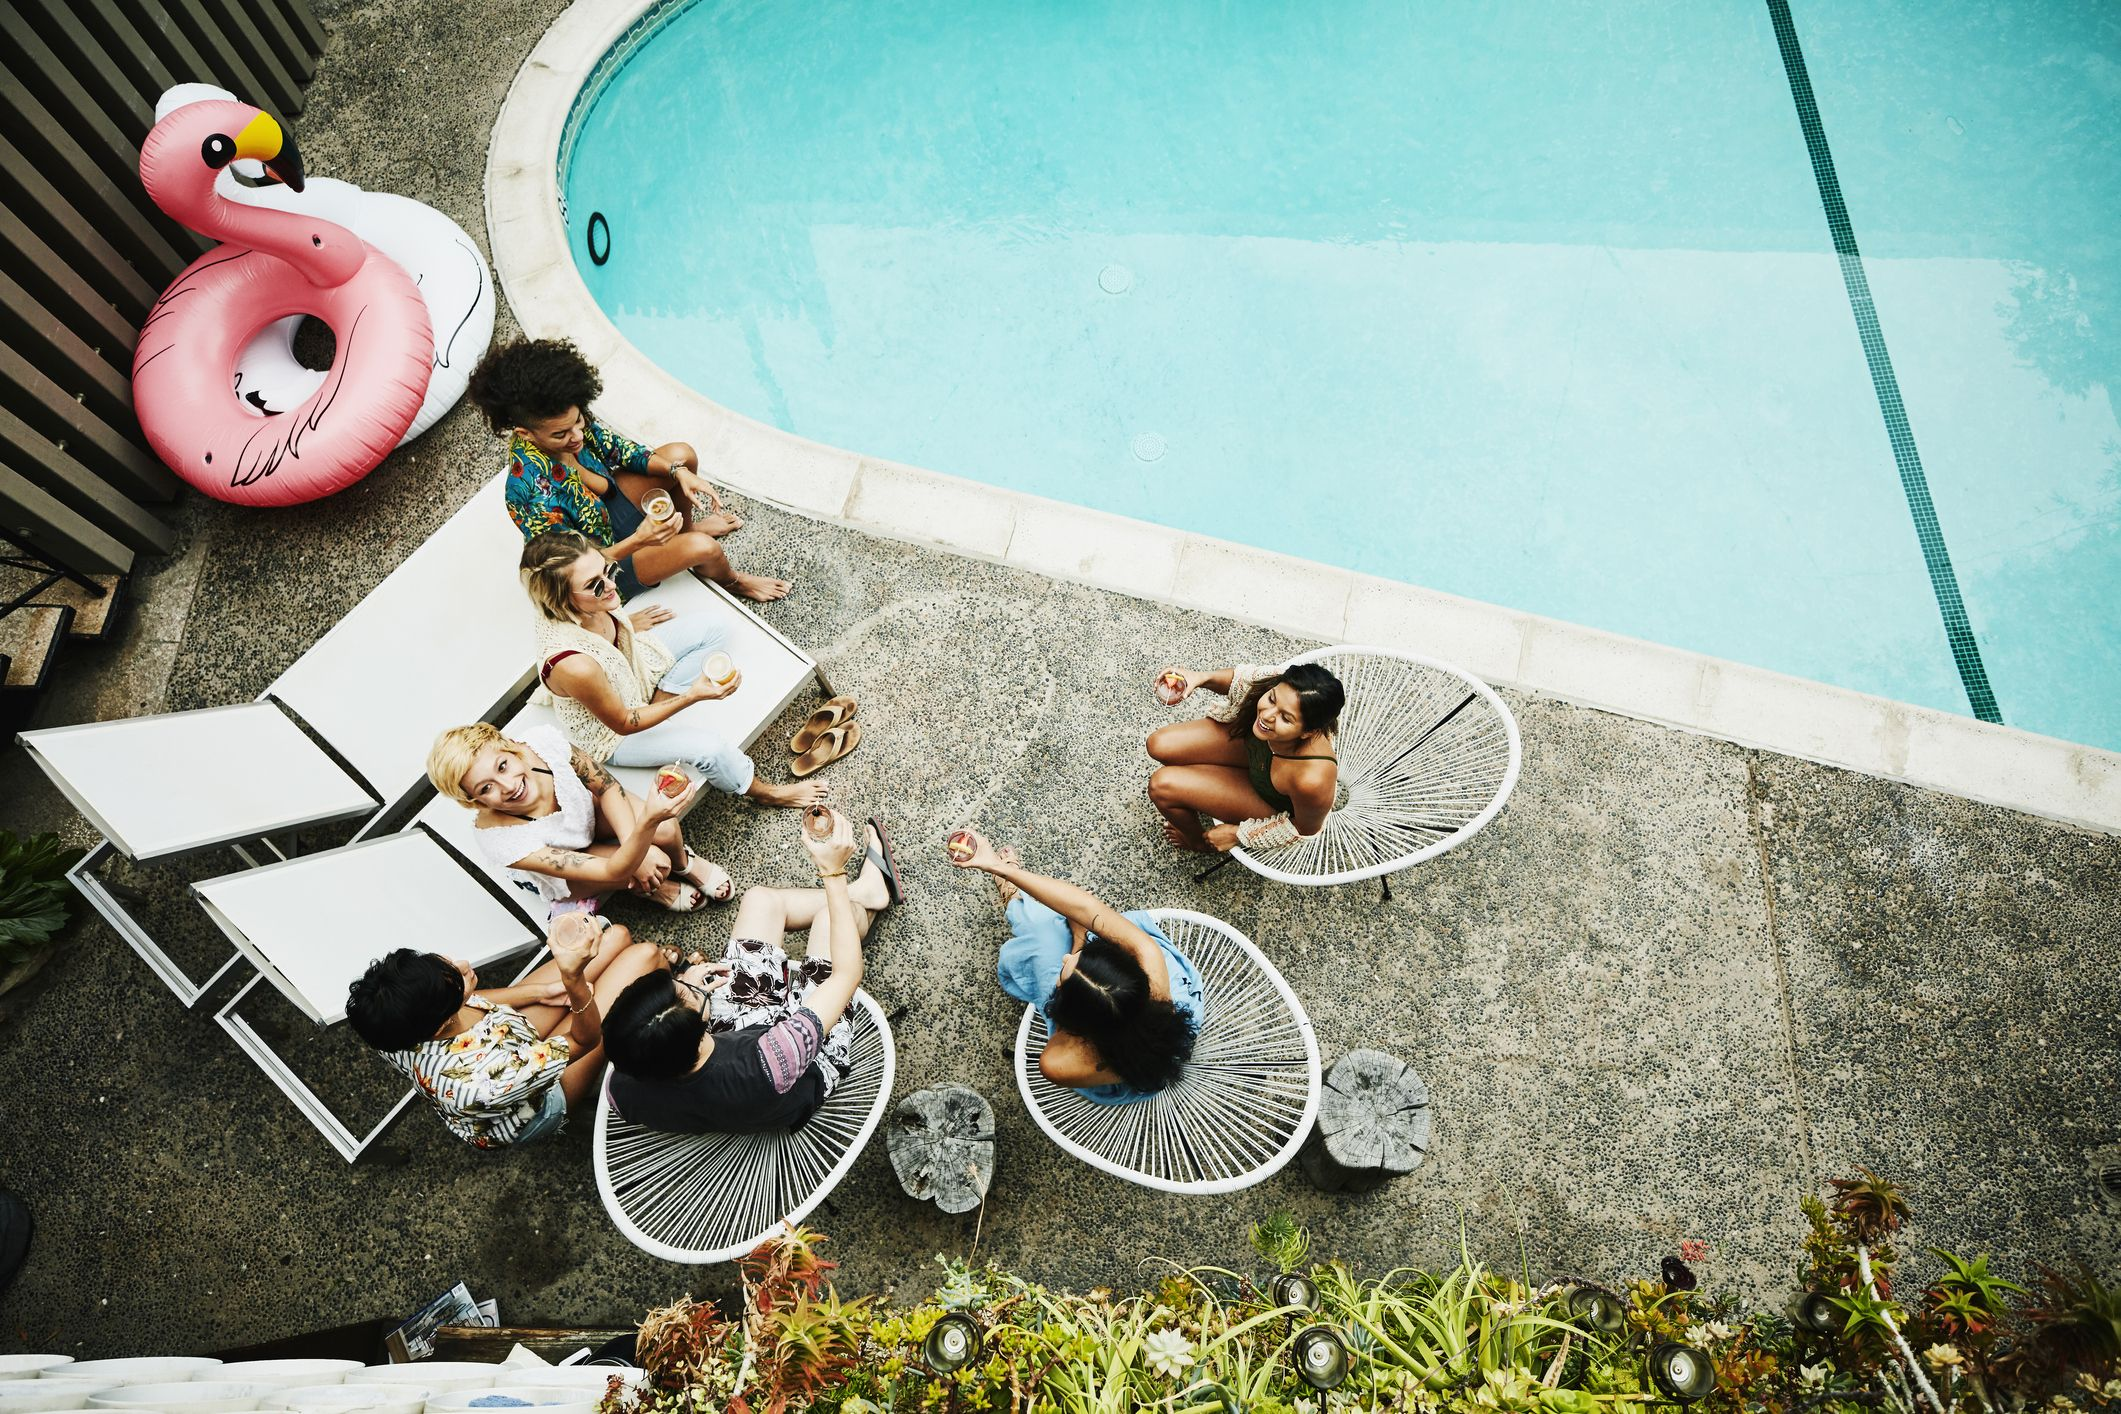 22 Best Pool Party Ideas - How to Throw a Pool Party